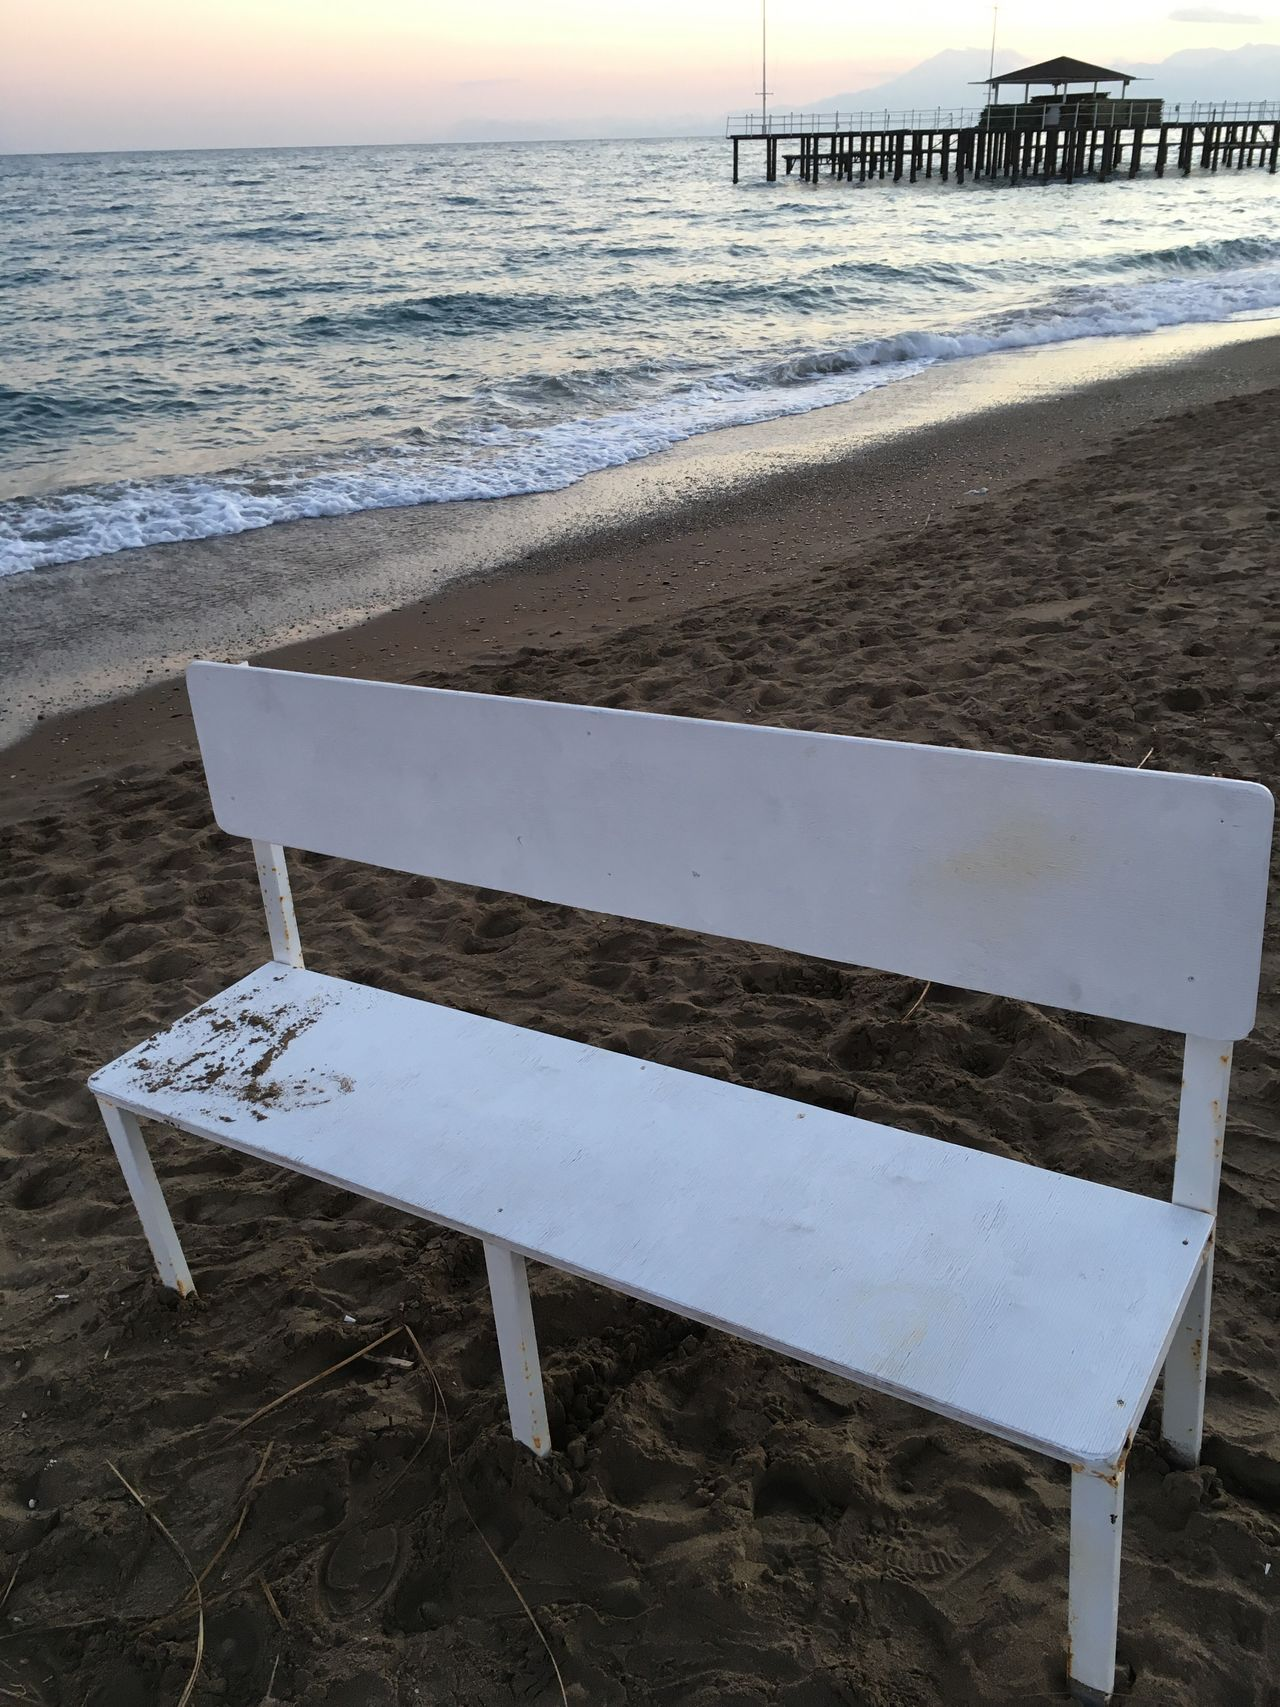 Sea Beach Bench No People Tranquility Sand Winter Akdeniz Antalya Turkey Sunset Wave EyeEm EyeEm Best Shots Picoftheday Loneliness Lara Day Challenge picture of the loneliness in winter Close-up